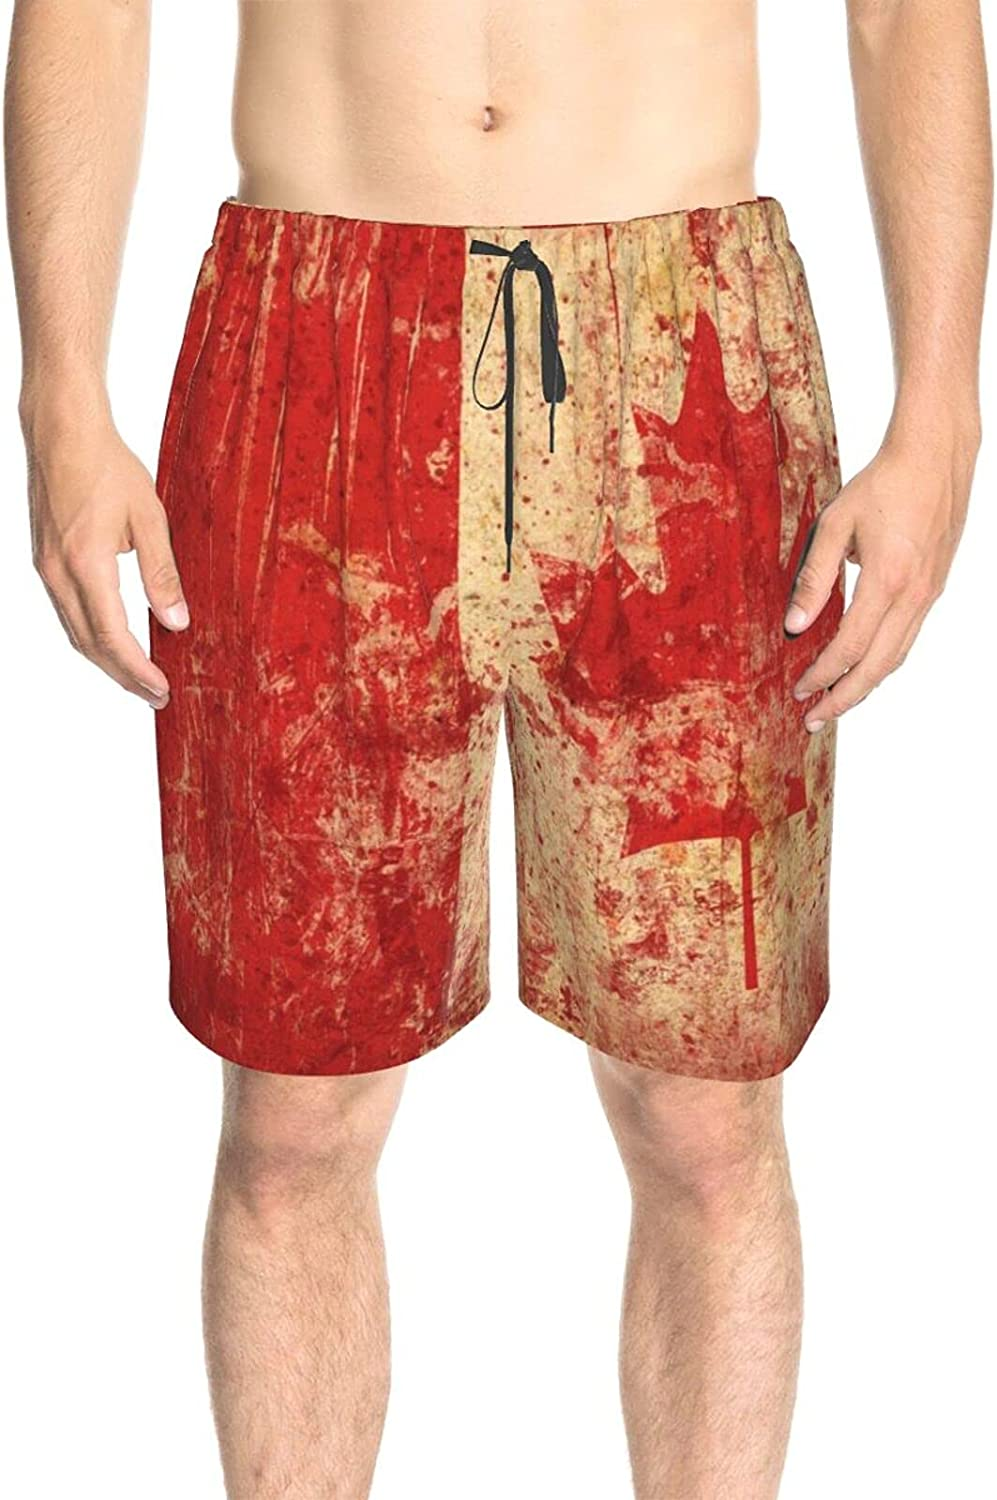 Men's Swim Trunks Canada Flag Blood Splash Beach Board Shorts Quick Dry Cool Surf Beach Shorts with Liner